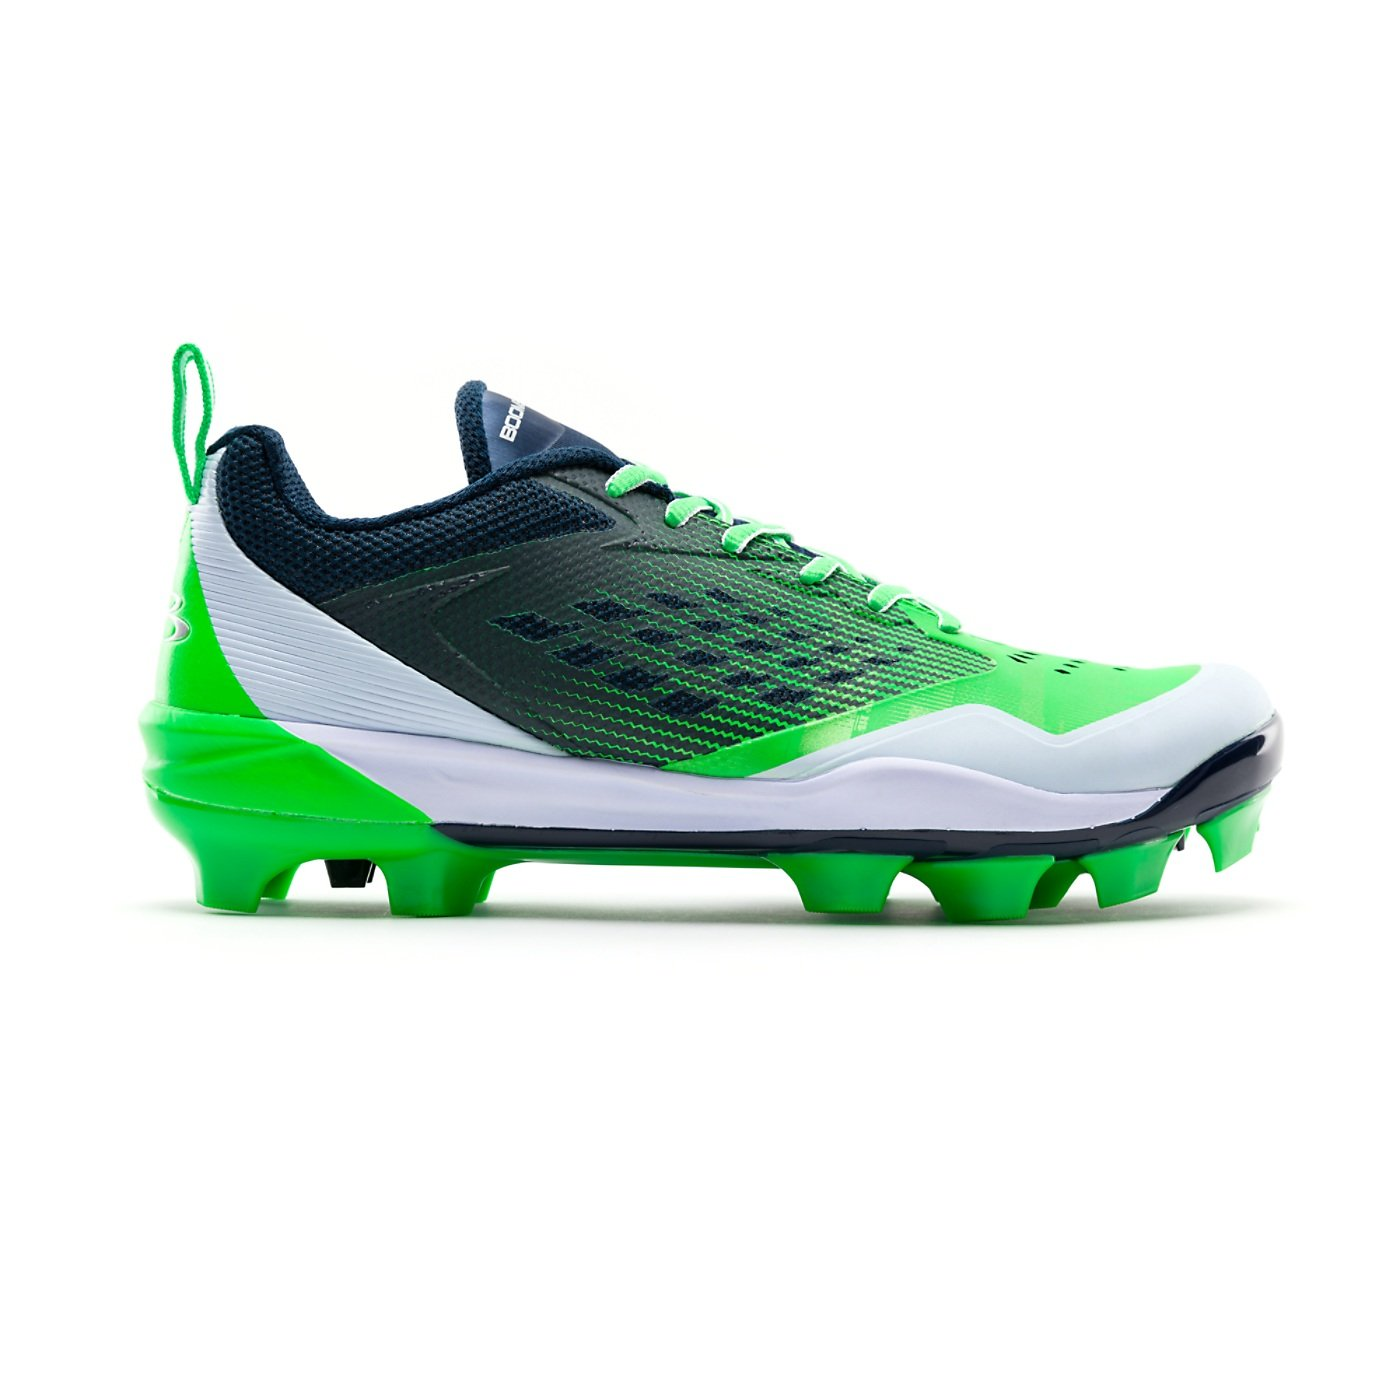 Boombah Men 's Marauderモールドクリート – 7色オプション – 複数のサイズ B07BTGS8LT 4|Navy/Lime Green Navy/Lime Green 4